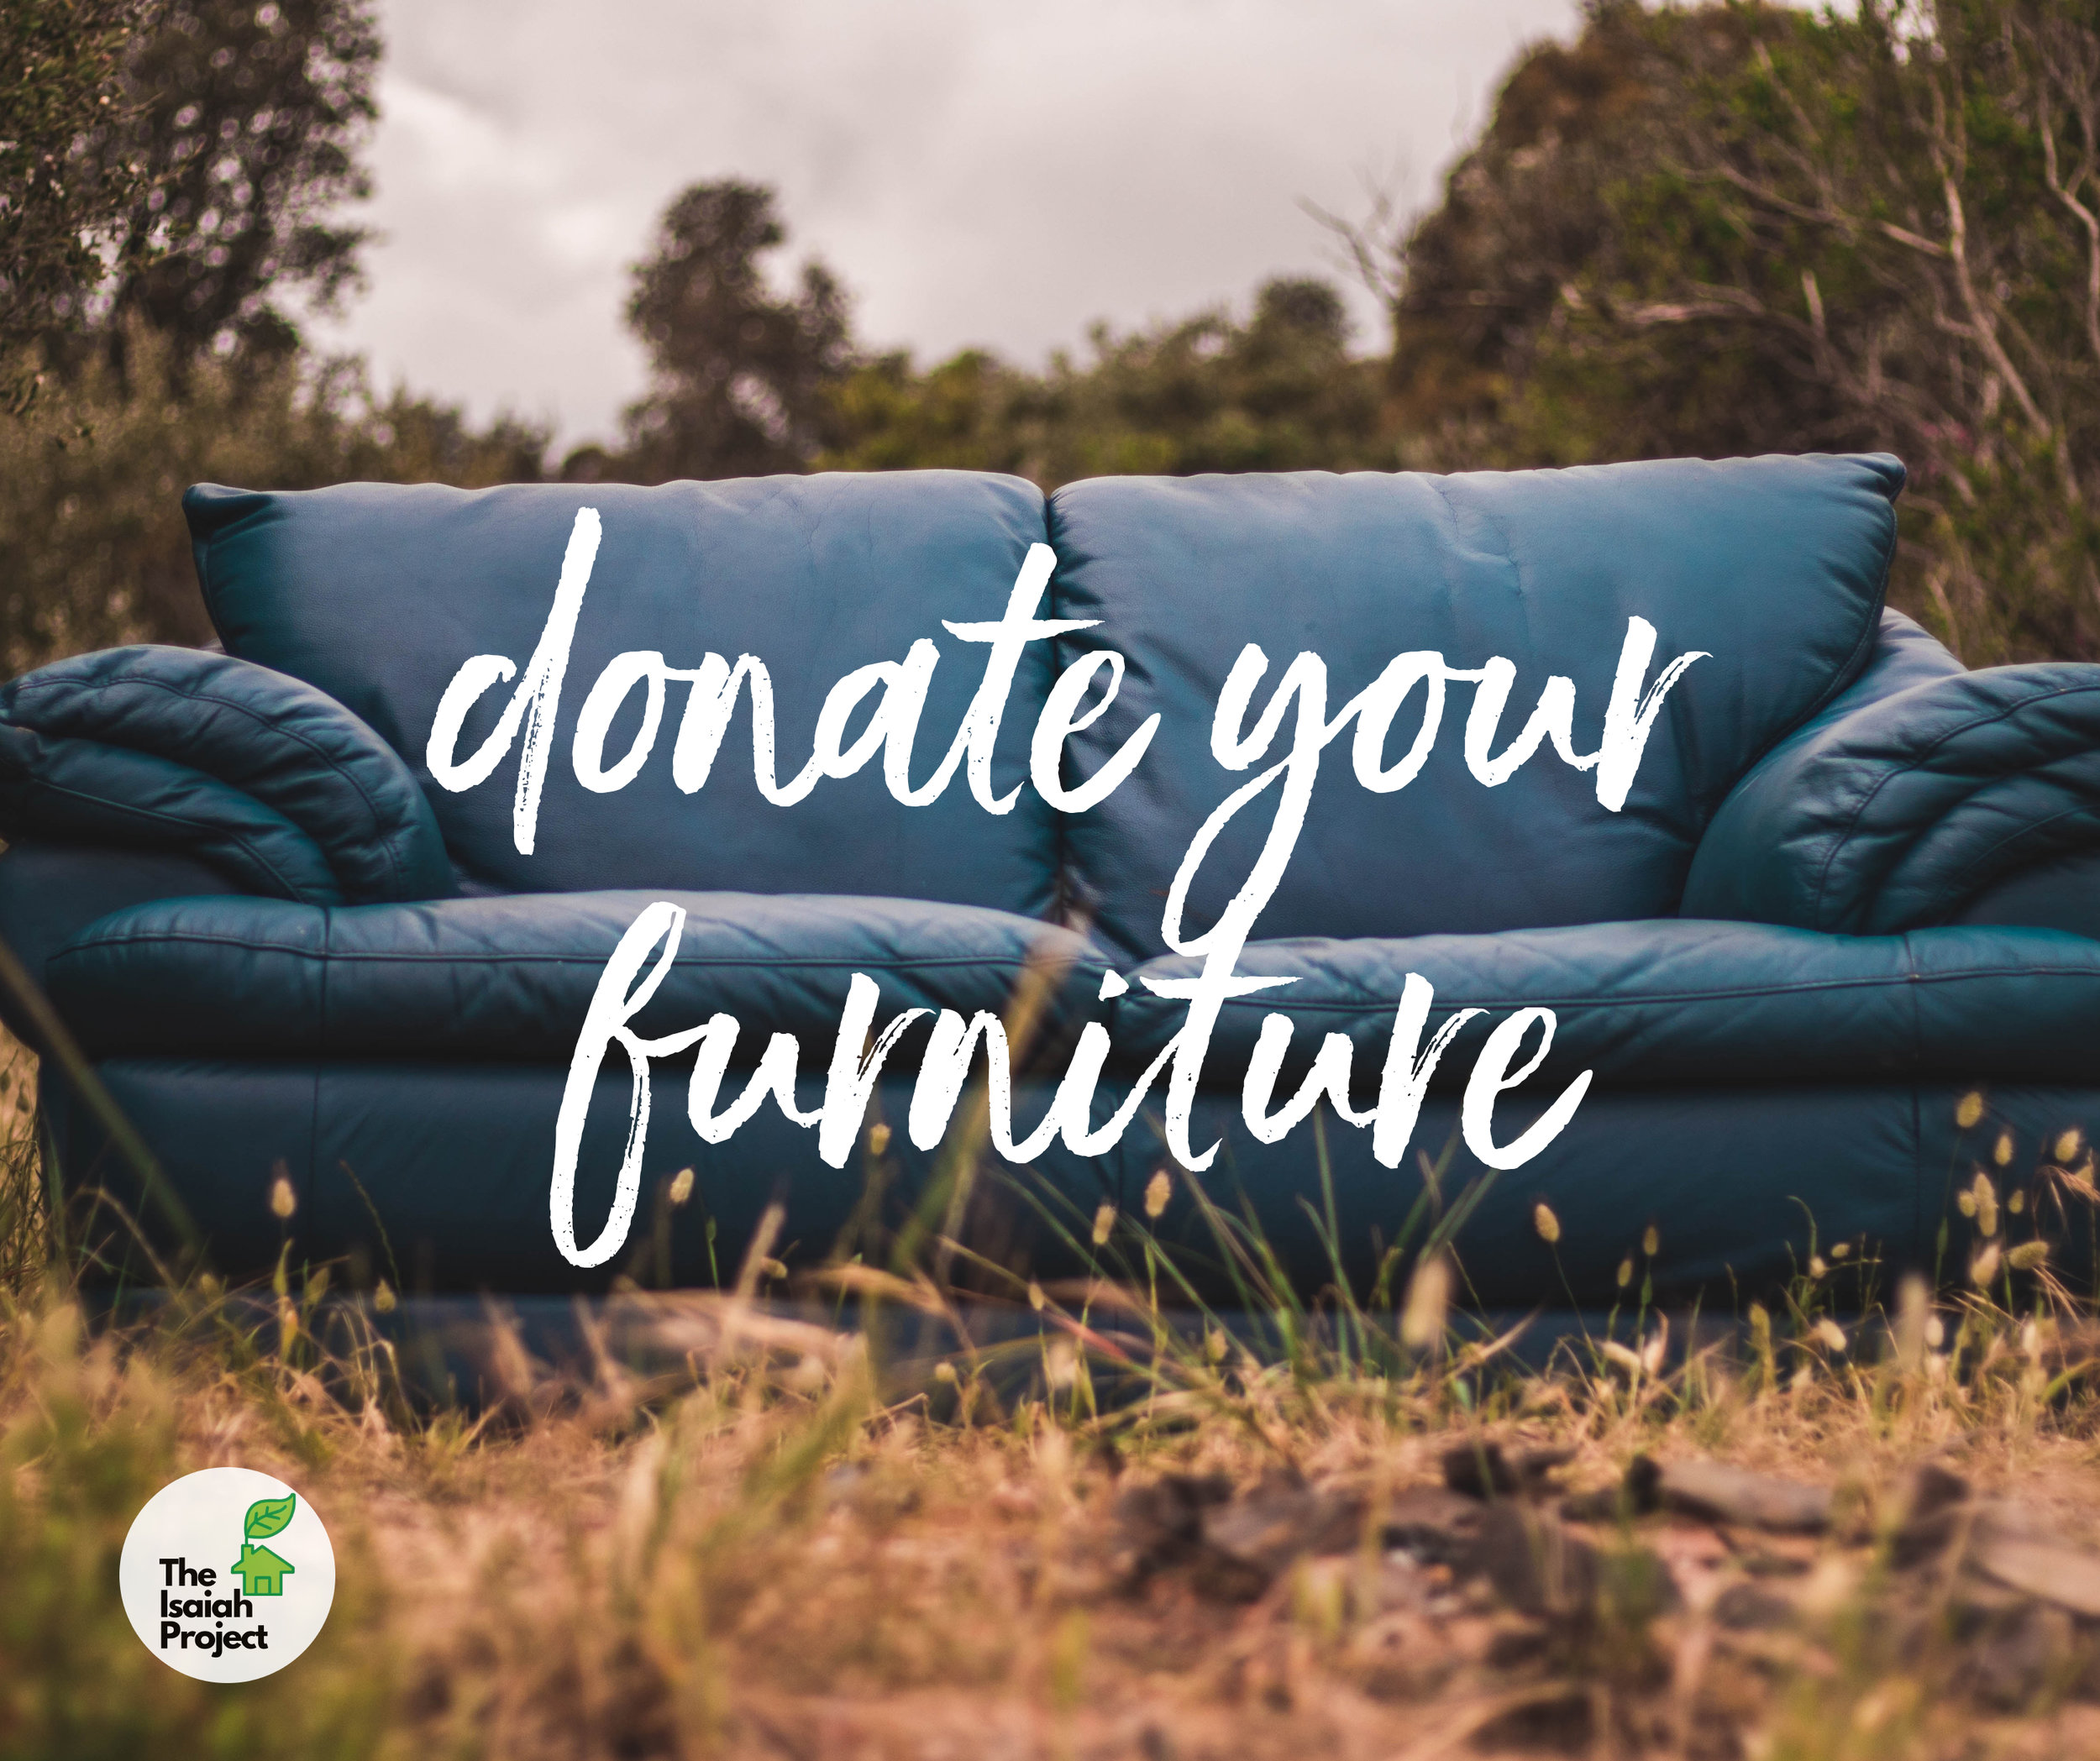 Donate to our shops - Ring our Office on 01702 436417 (Mon - Fri 9am - 5pm) where we will be happy to arrange a collection.Furniture:Please ensure that sofas etc have the fire label still on them and are rip/stain free.Electrical Goods:Please ensure that these have the 'CE' mark.Please note that we cannot accept wall/lounge units.We are so grateful for your donations!